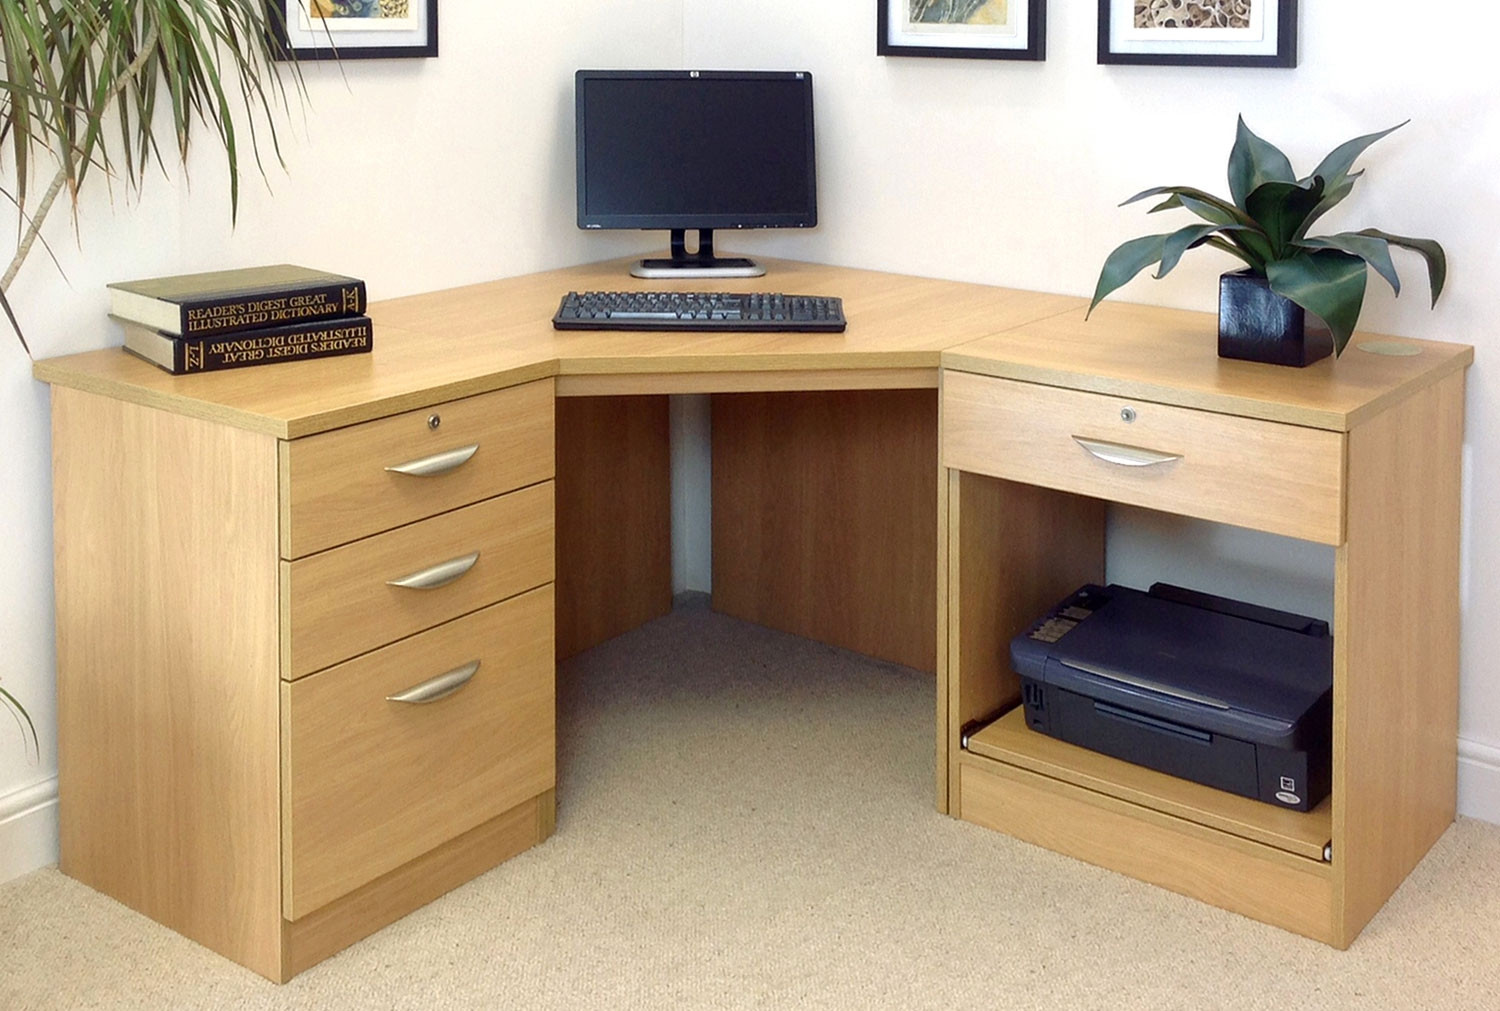 Small Office Corner Desk Set With 3 1 Drawers Amp Printer